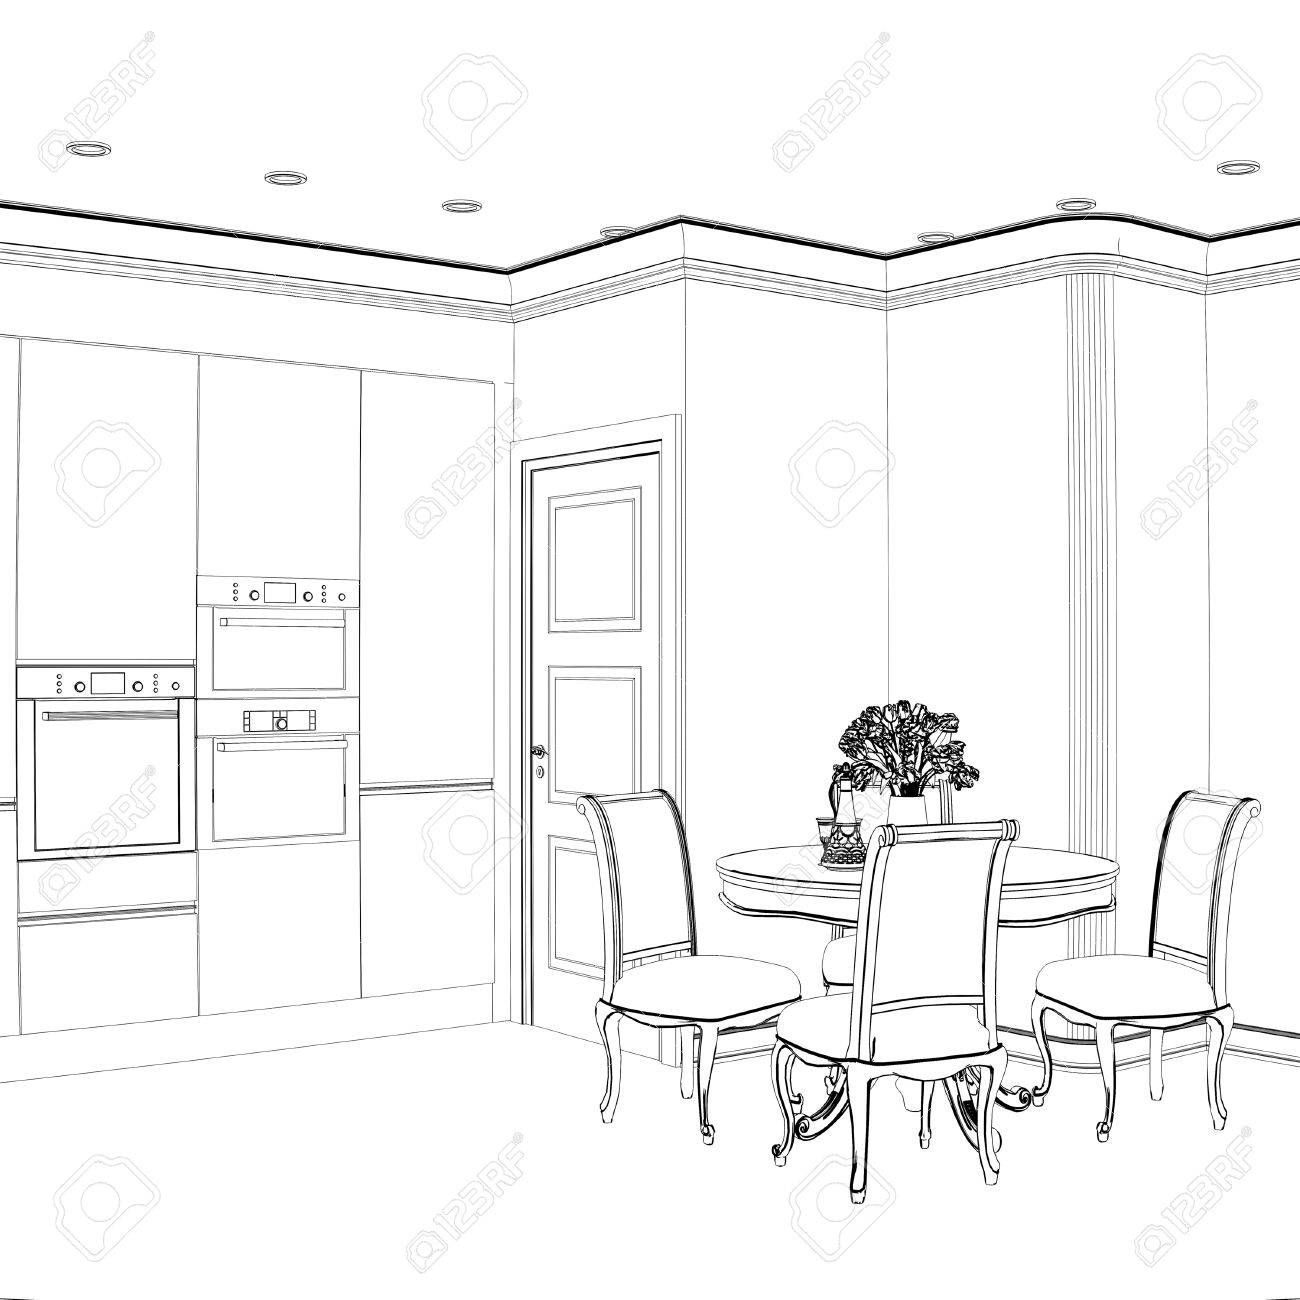 3d Sketch Of Kitchen Interior With Dining Area Stock Photo Picture